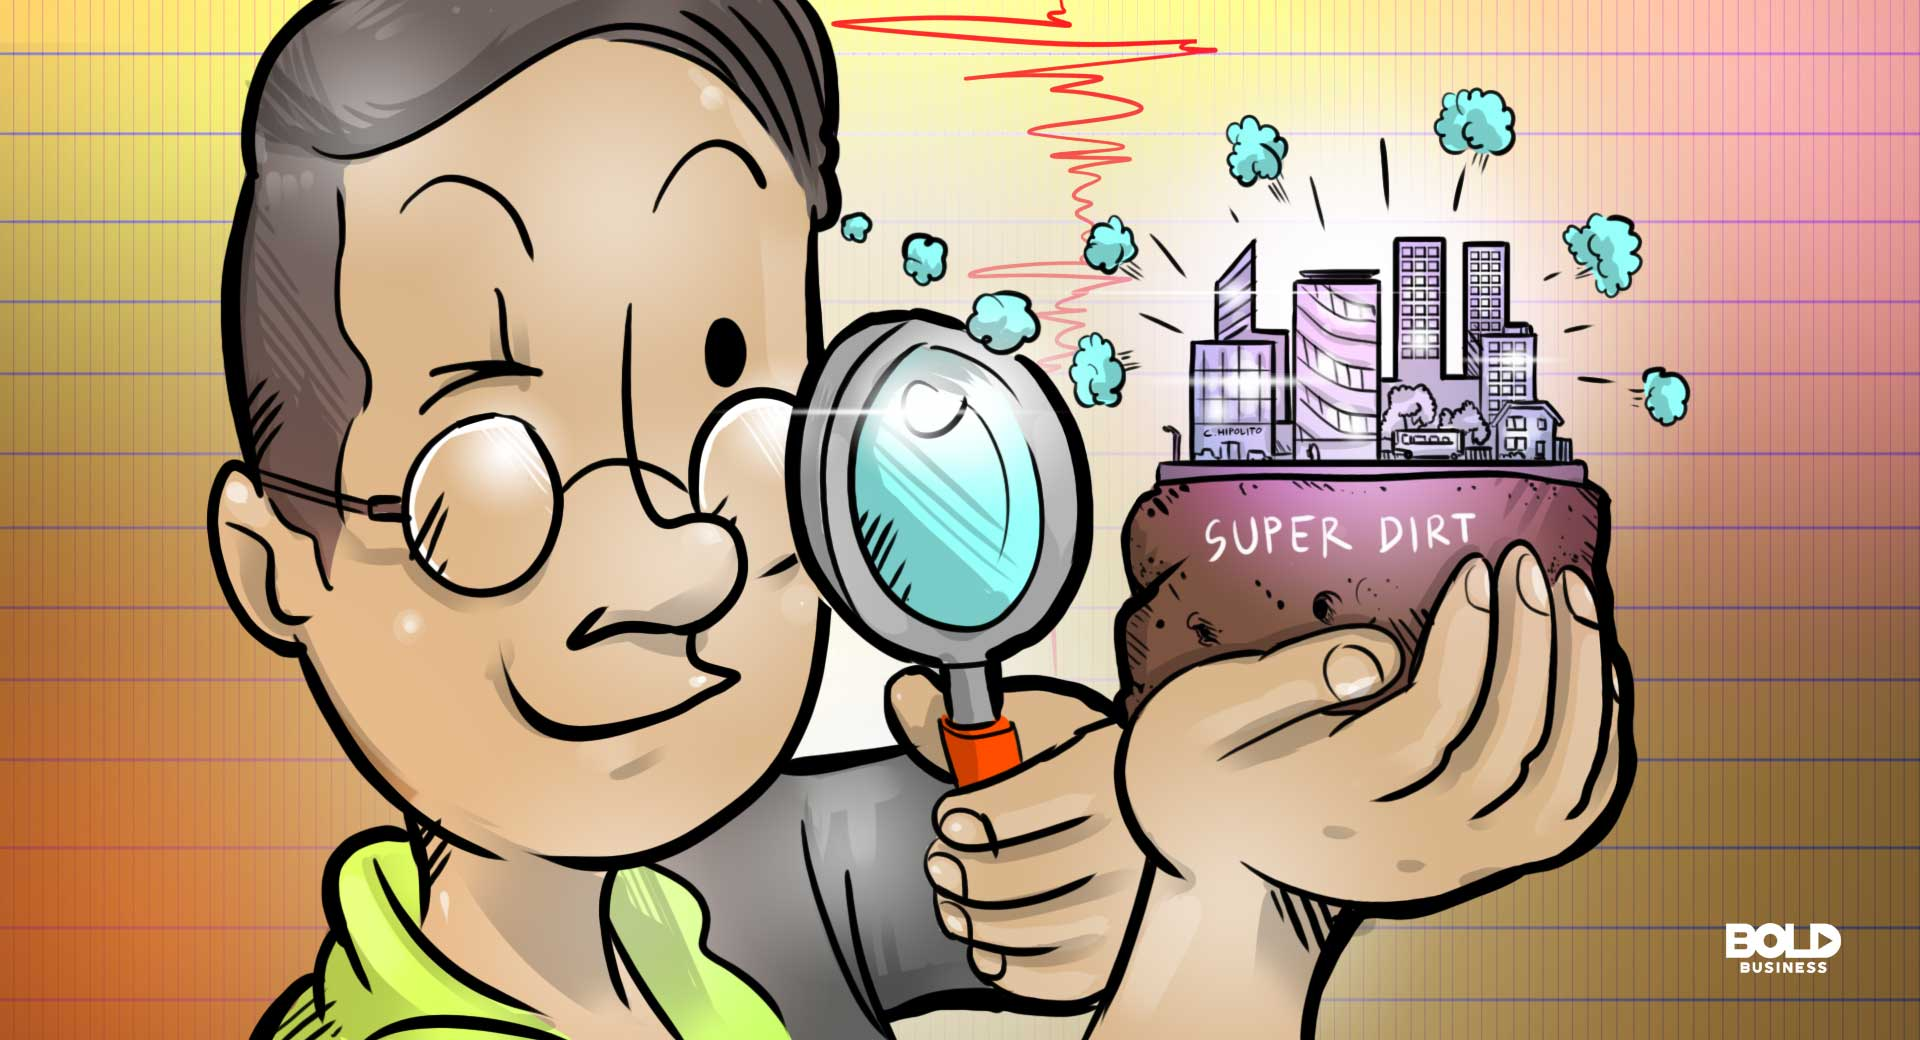 a cartoon of a scientist using super dirt to prevent soil liquefication for a more a more earthquake-resistant structures